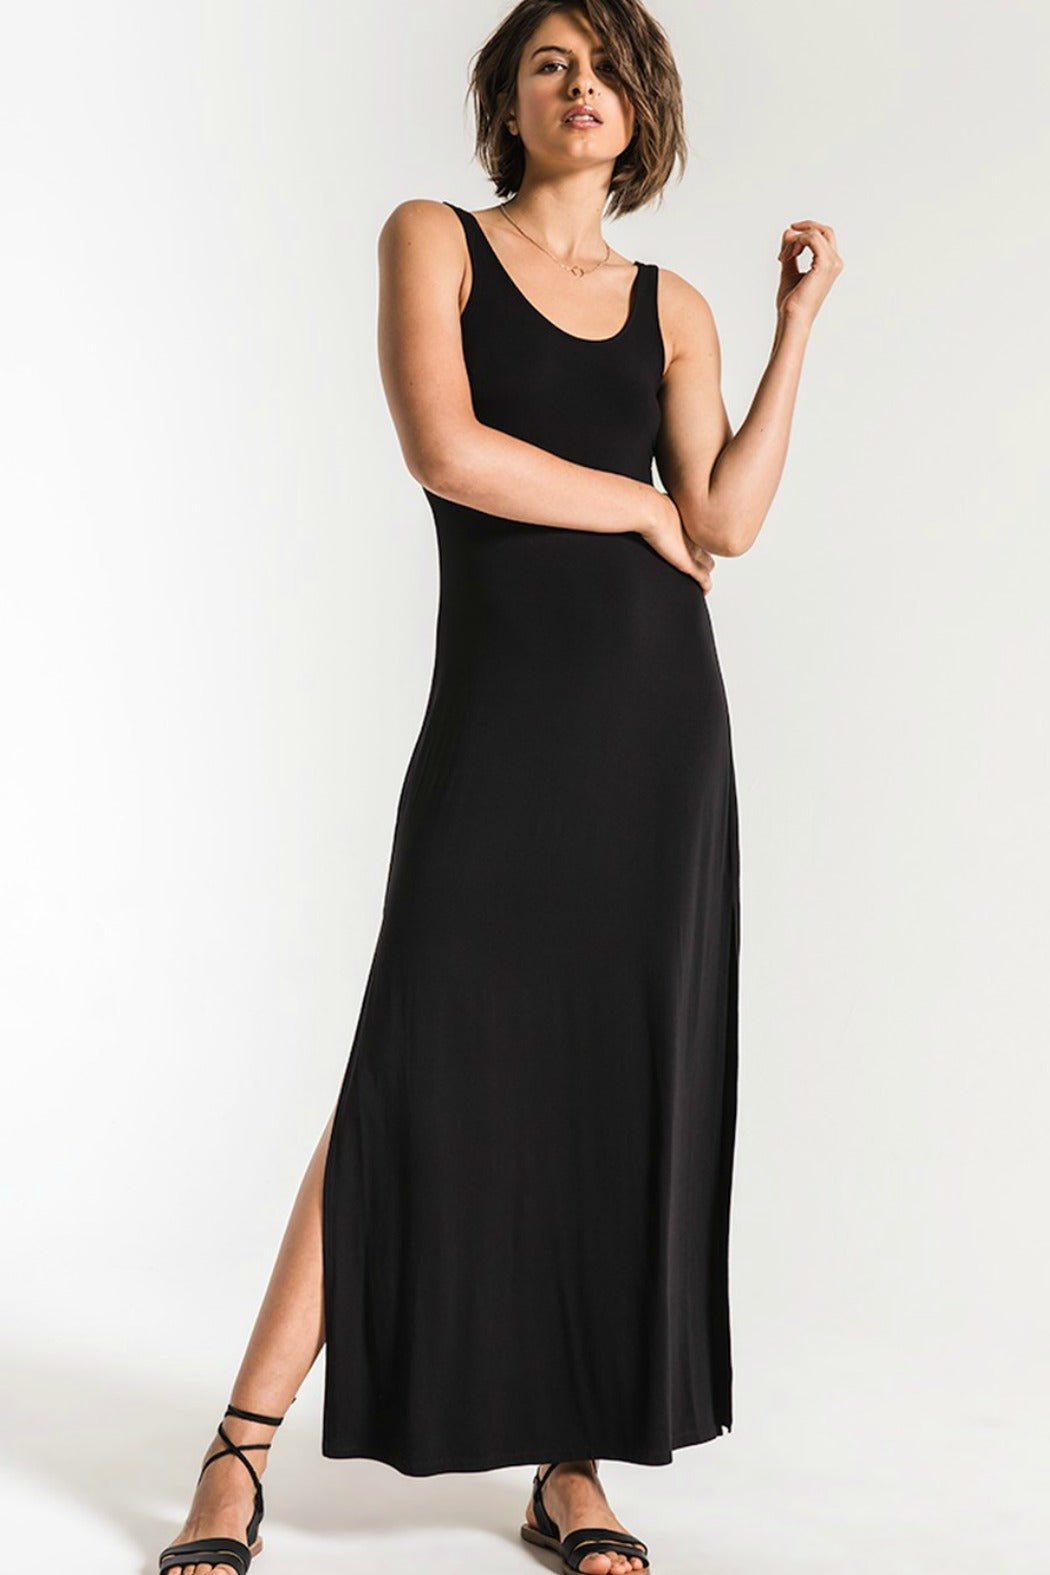 9bdf4b5a6f89 Z Supply Victoria Maxi Dress in Black – Queen of Hearts and Modern Love